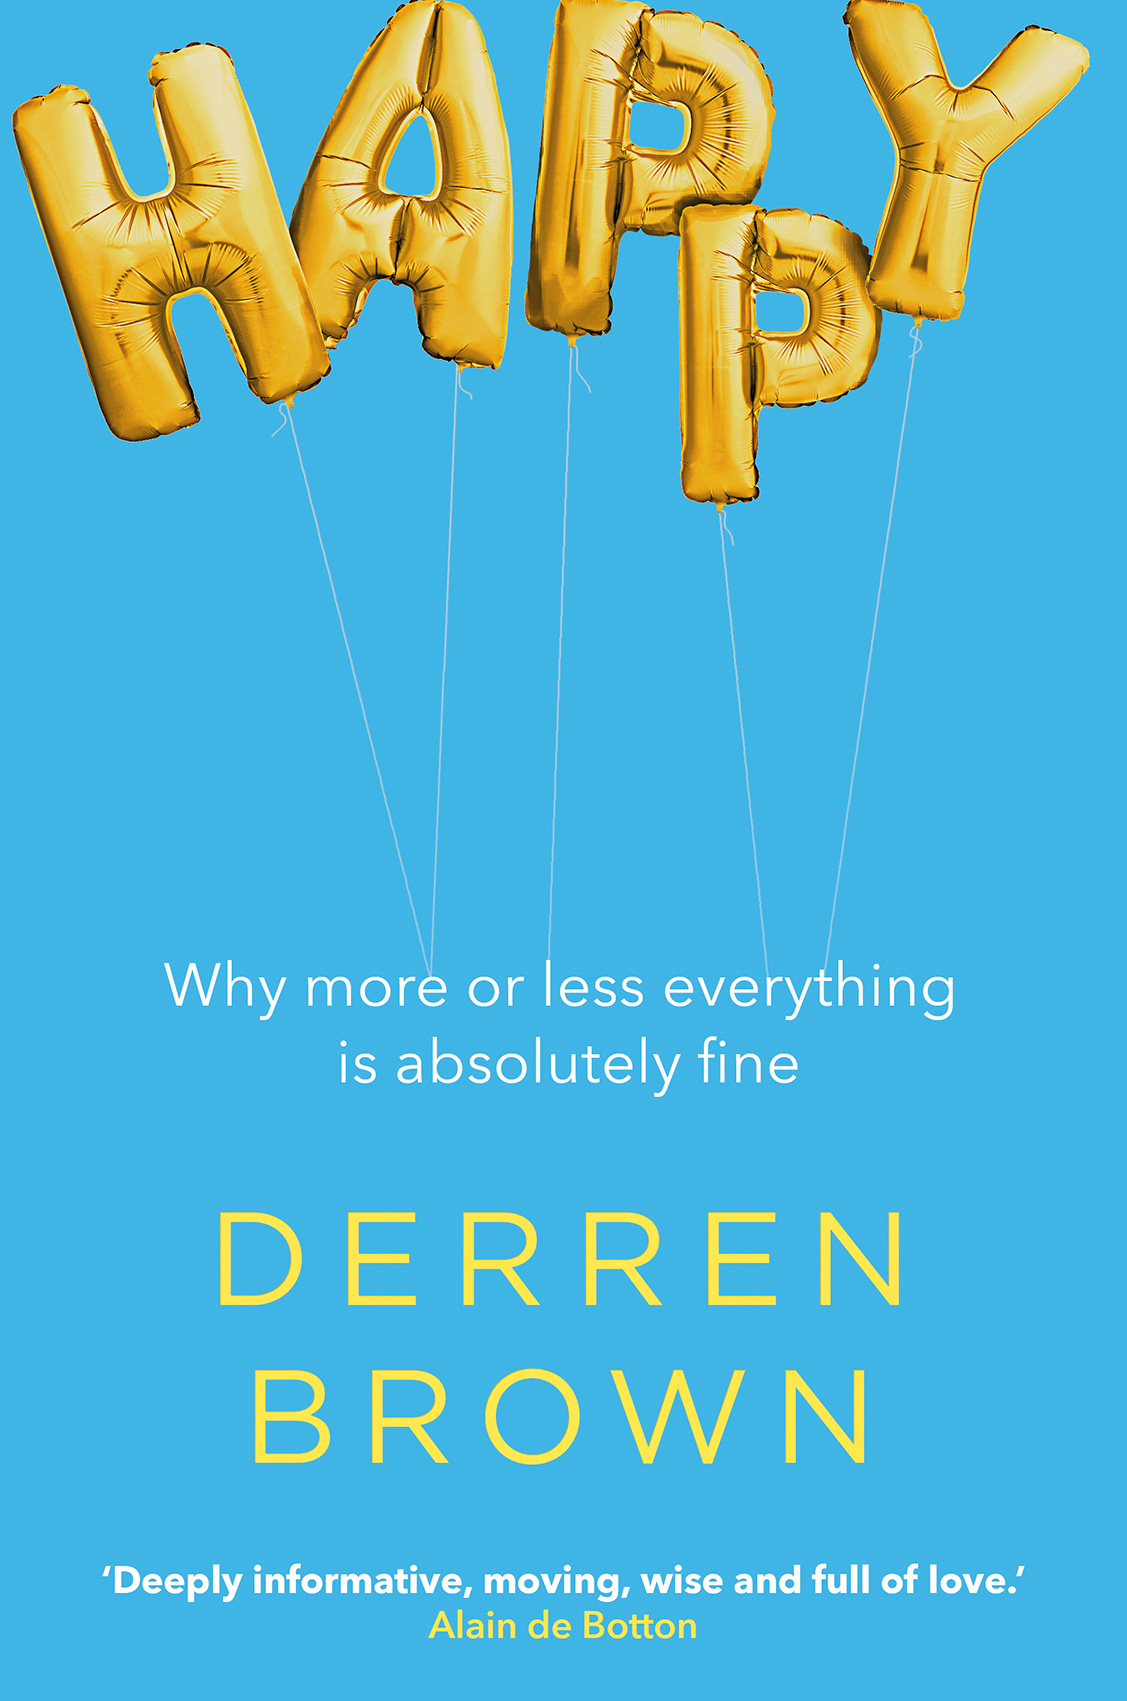 Cover of the hardback edition of 'Happy' by Derren Brown